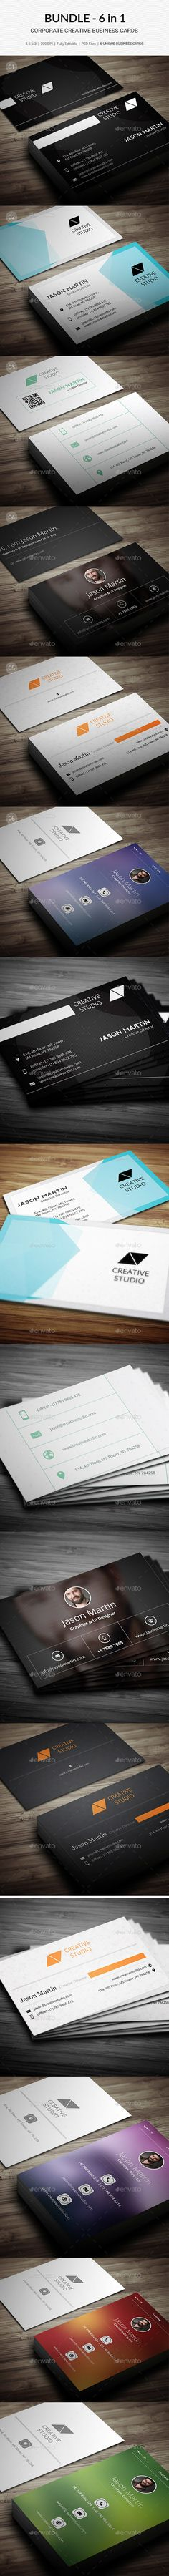 Bundle 6 in 1 creative business cards b34 business cards 6 creative business card templates psd reheart Images